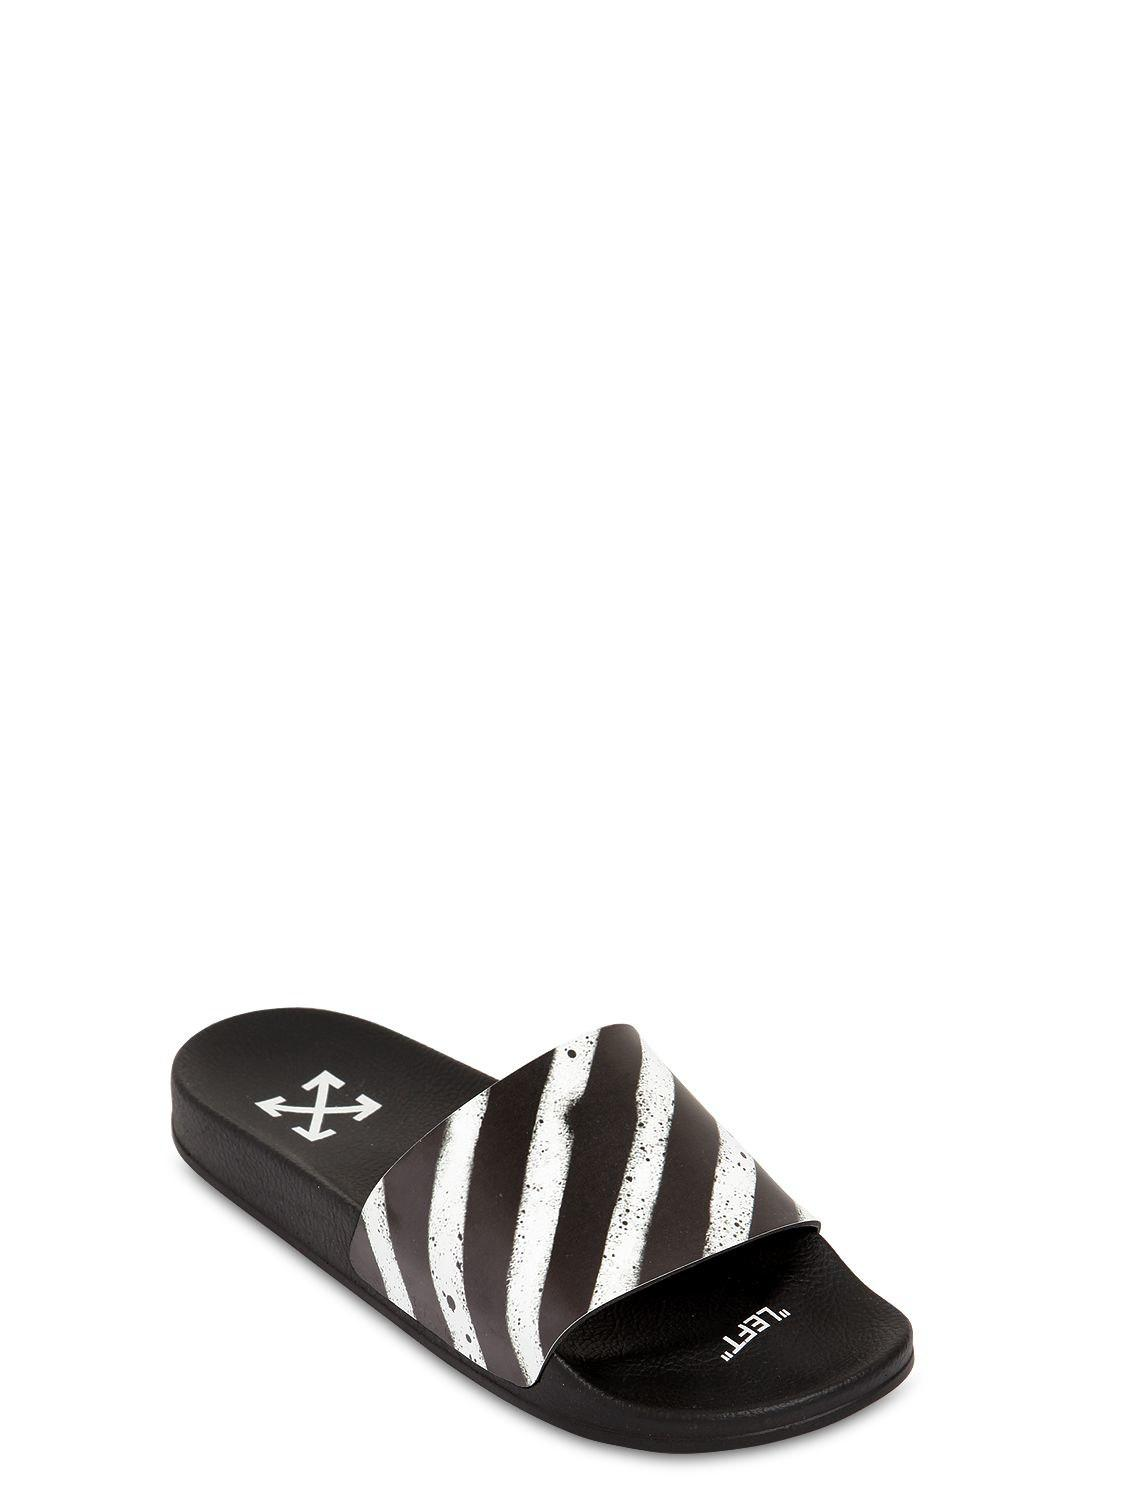 b19cc75a2609 Off-White c o Virgil Abloh - Black Spray Stripes Slide Sandals for Men.  View fullscreen